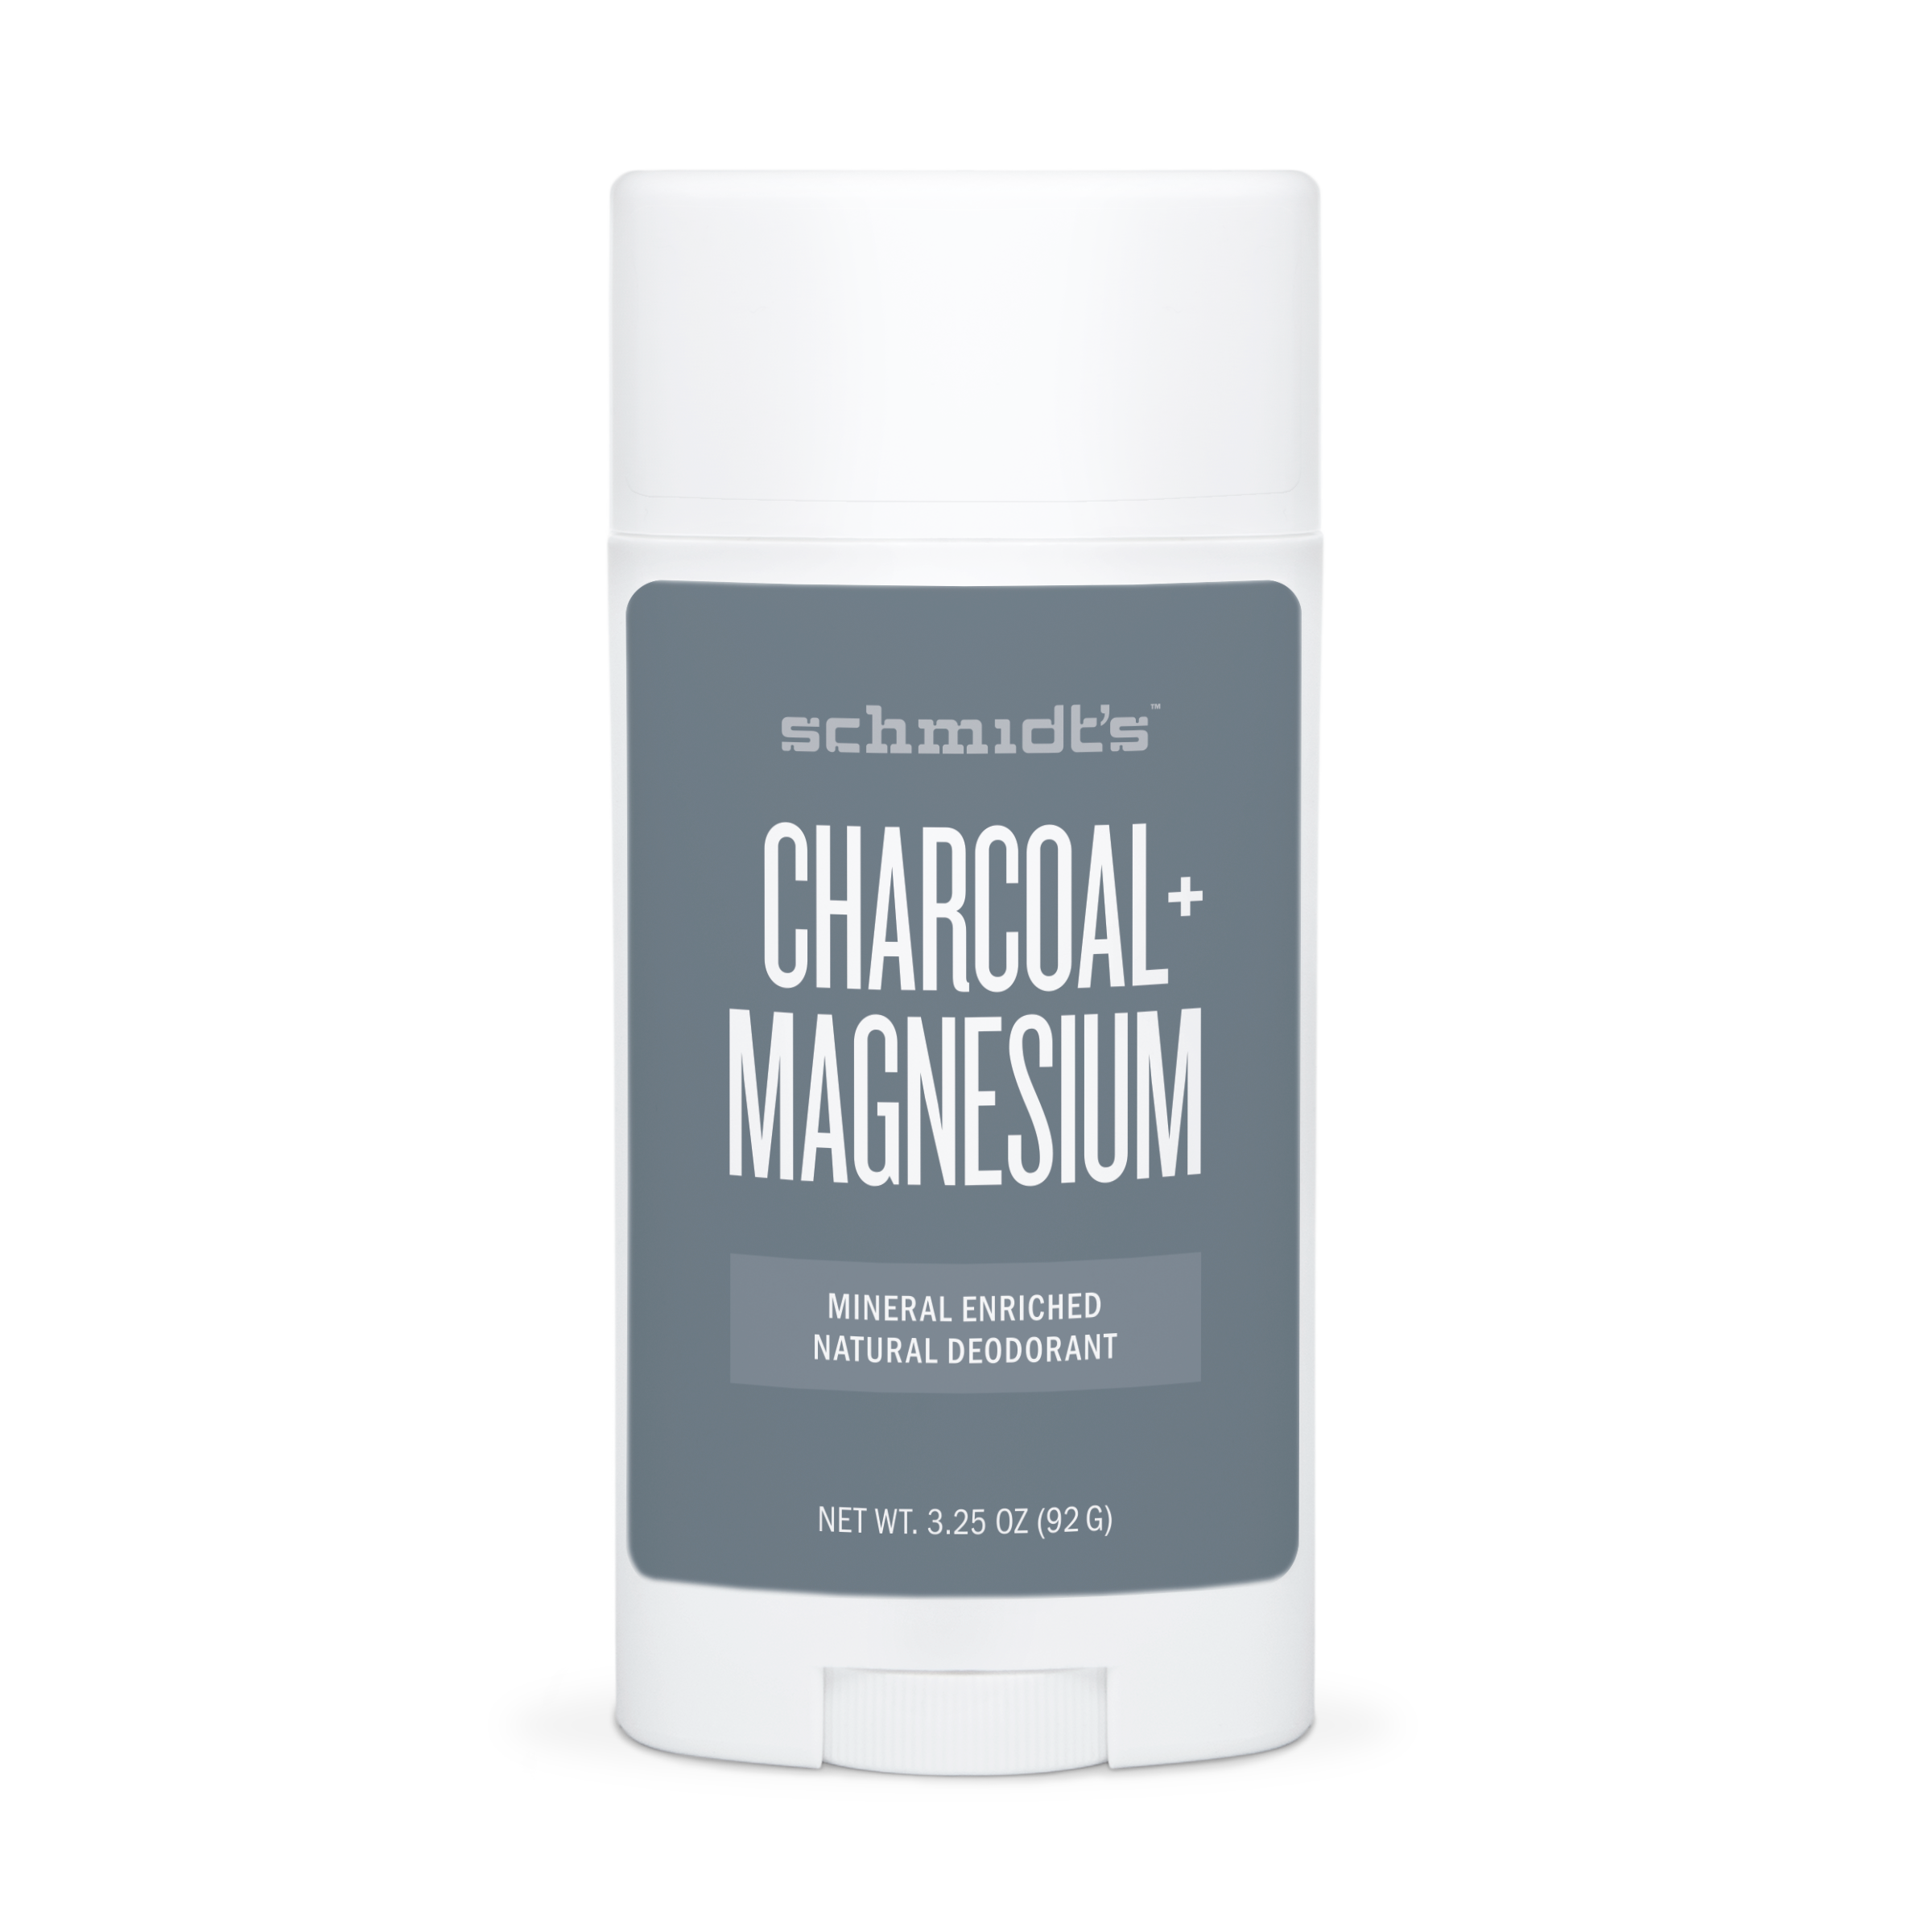 Natural Deodorant Made with Charcoal and Magnesium - Schmidt's Deodorant Reviewed #vegan #naturalskincare #usalovelisted